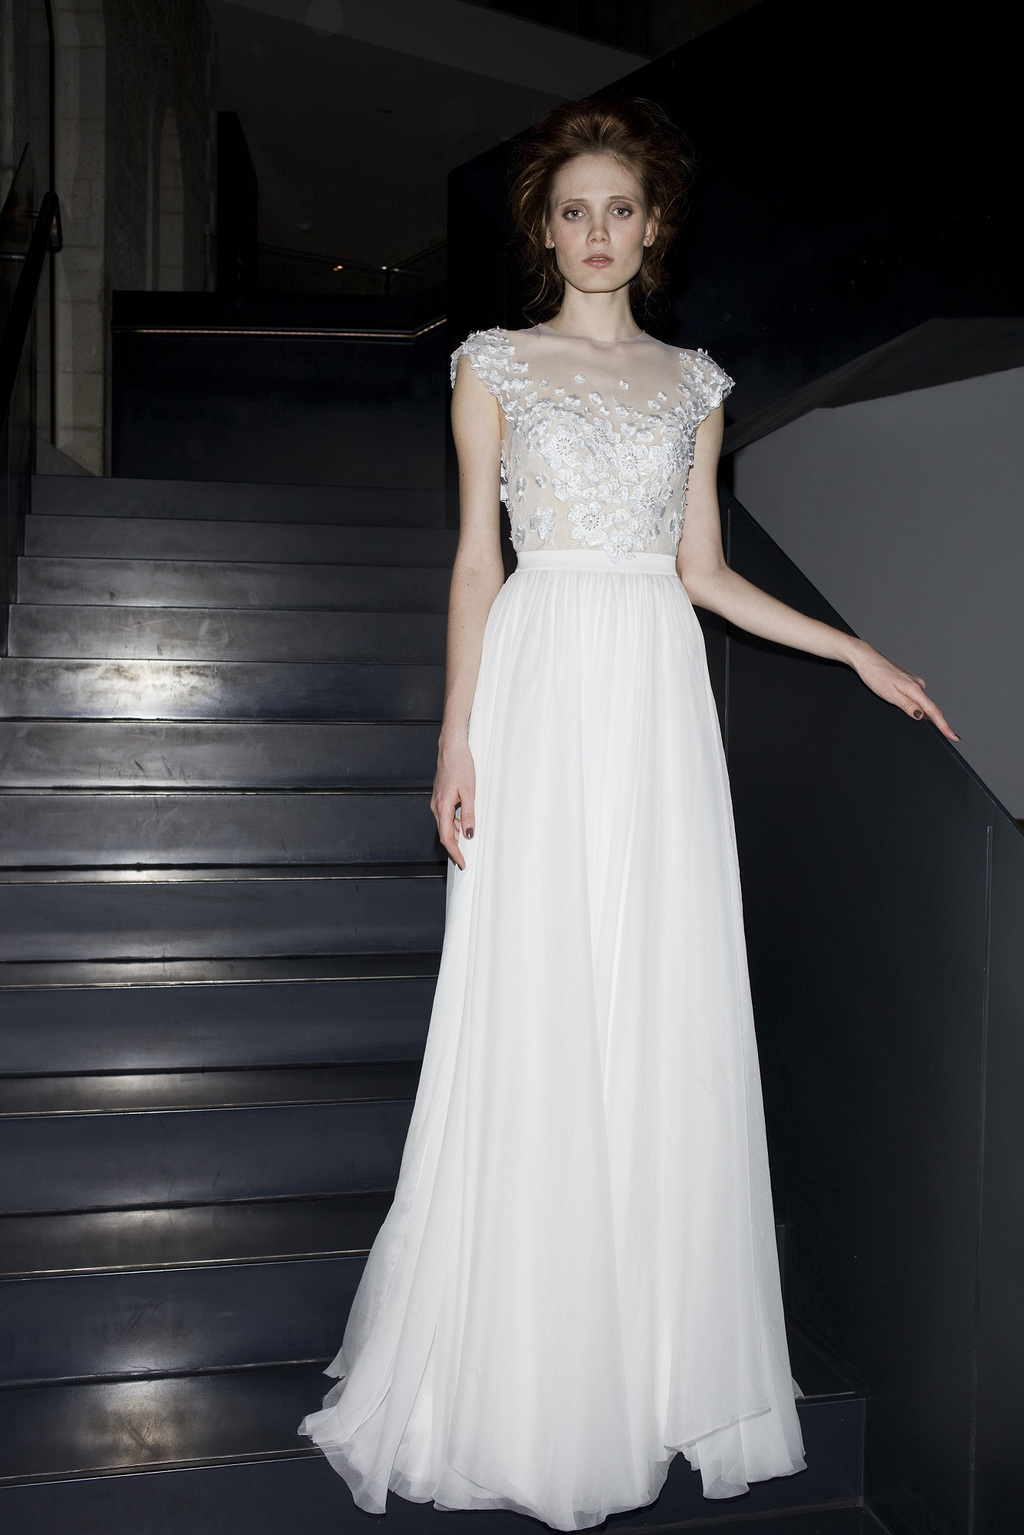 Sira-wedding-dress-by-mira-zwillinger-2014-bridal.full